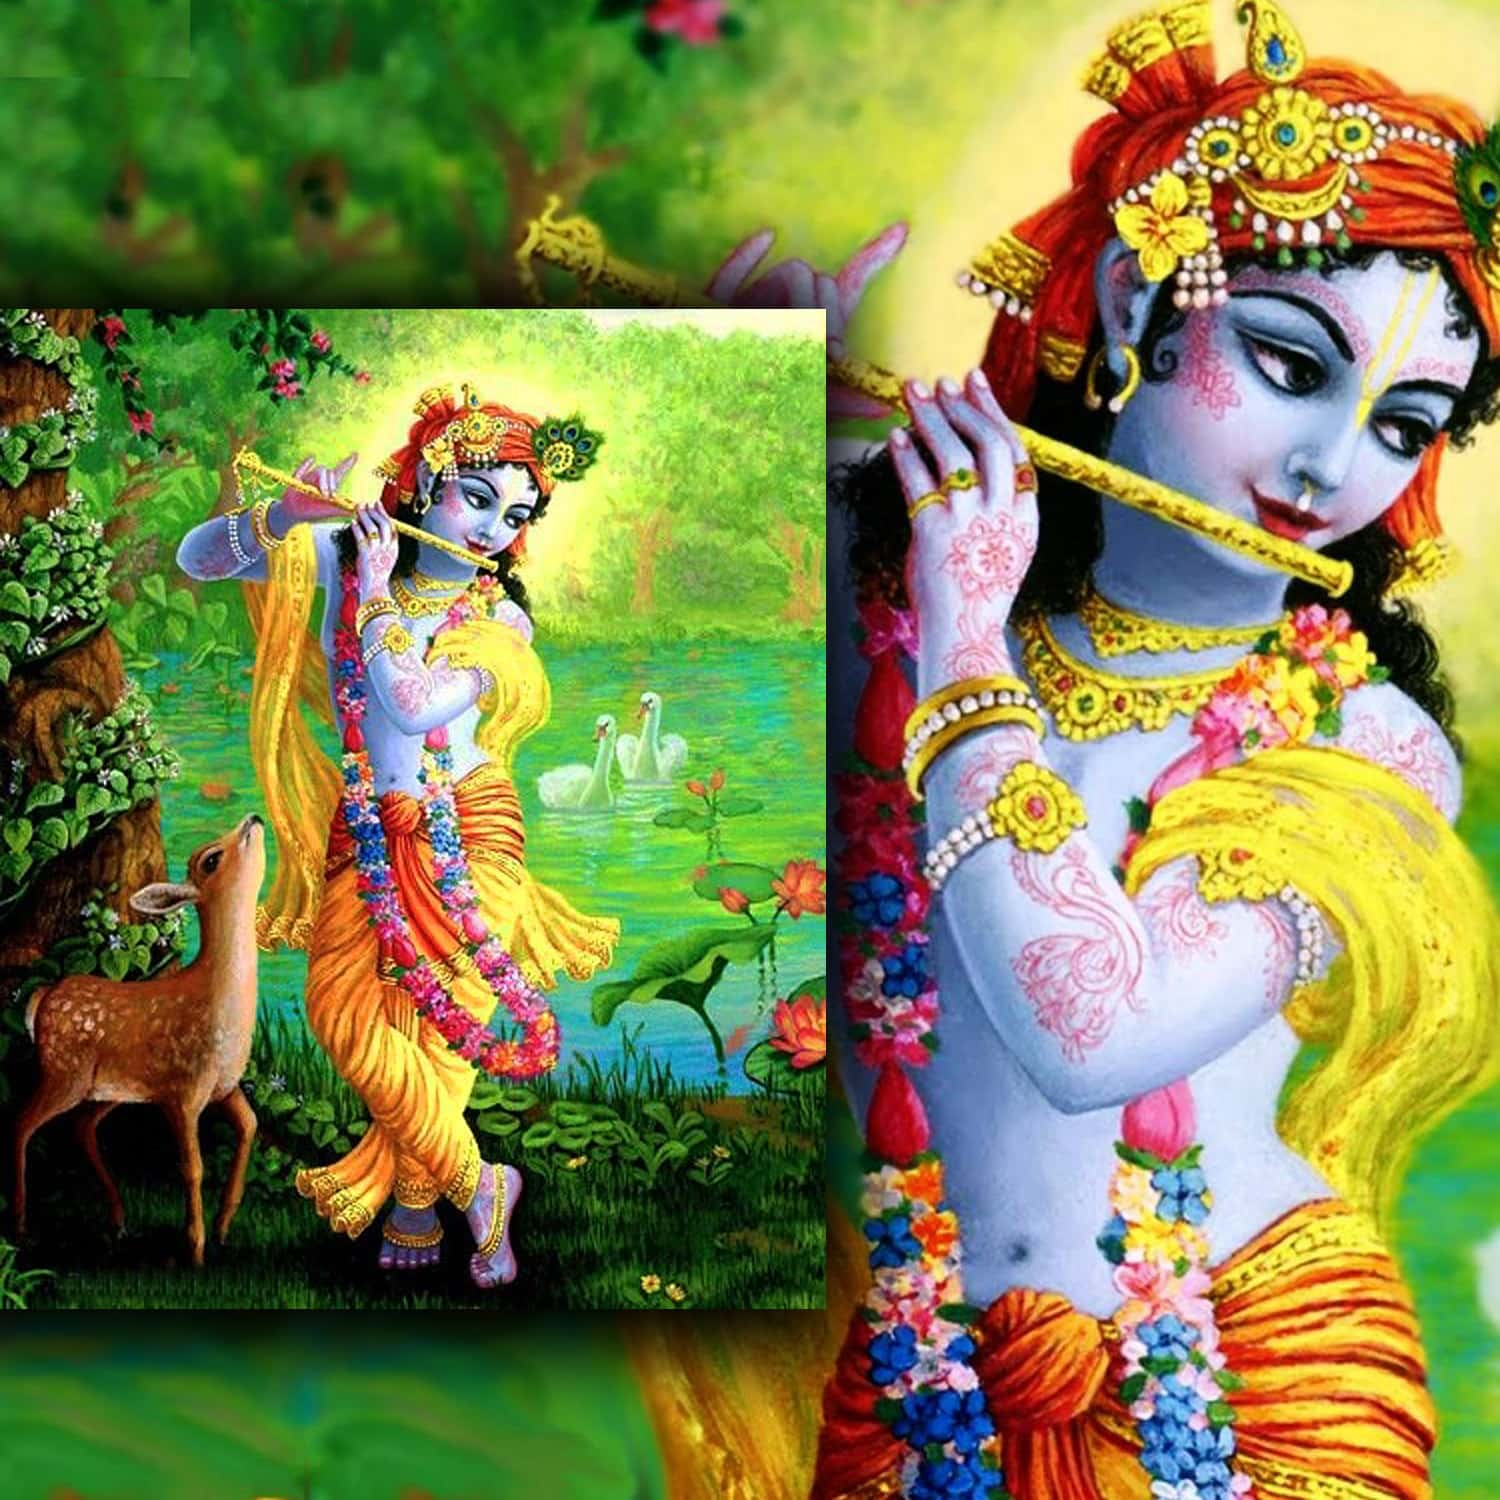 Lord Krishna with flute - wearing yellow symbol of wisdom